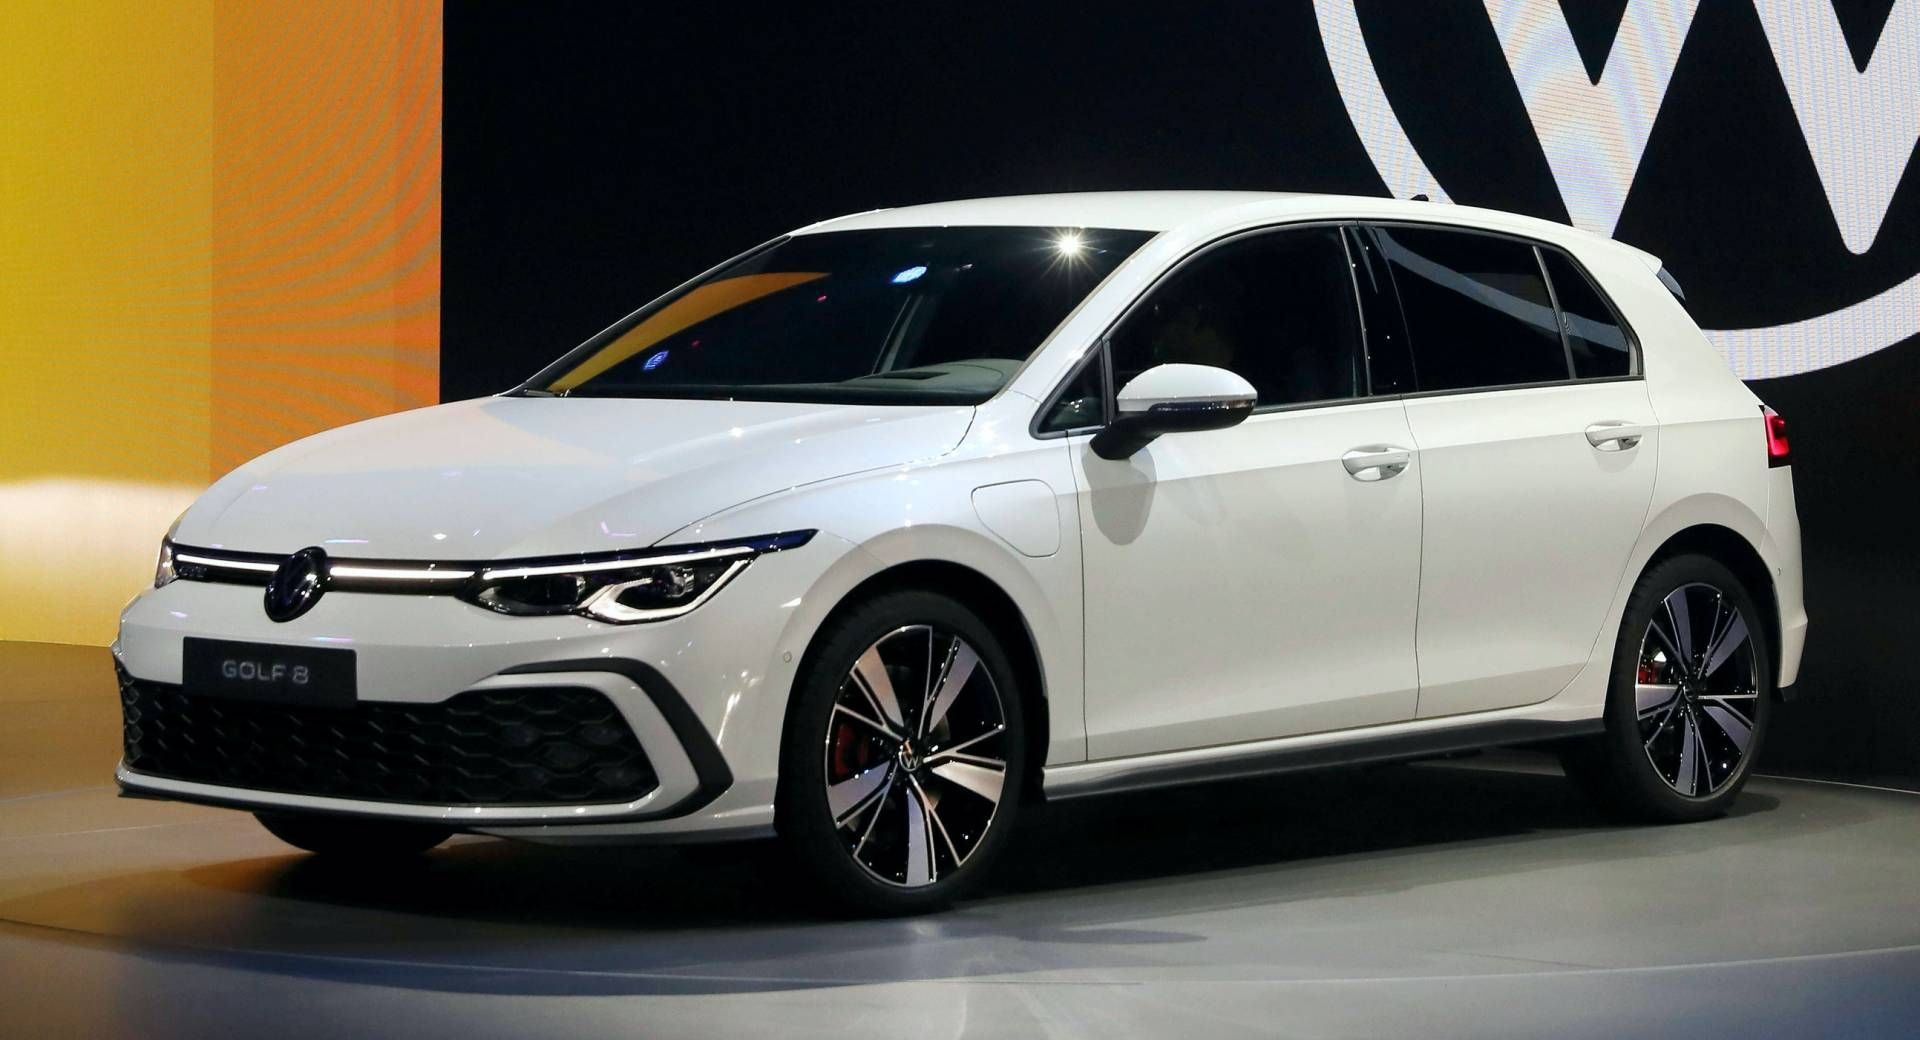 Vw Giving Canadian 2020 E Golf Customers 2 Years Of Free 30 Min Charges In 2020 Automotive News Ev Charging New Cars